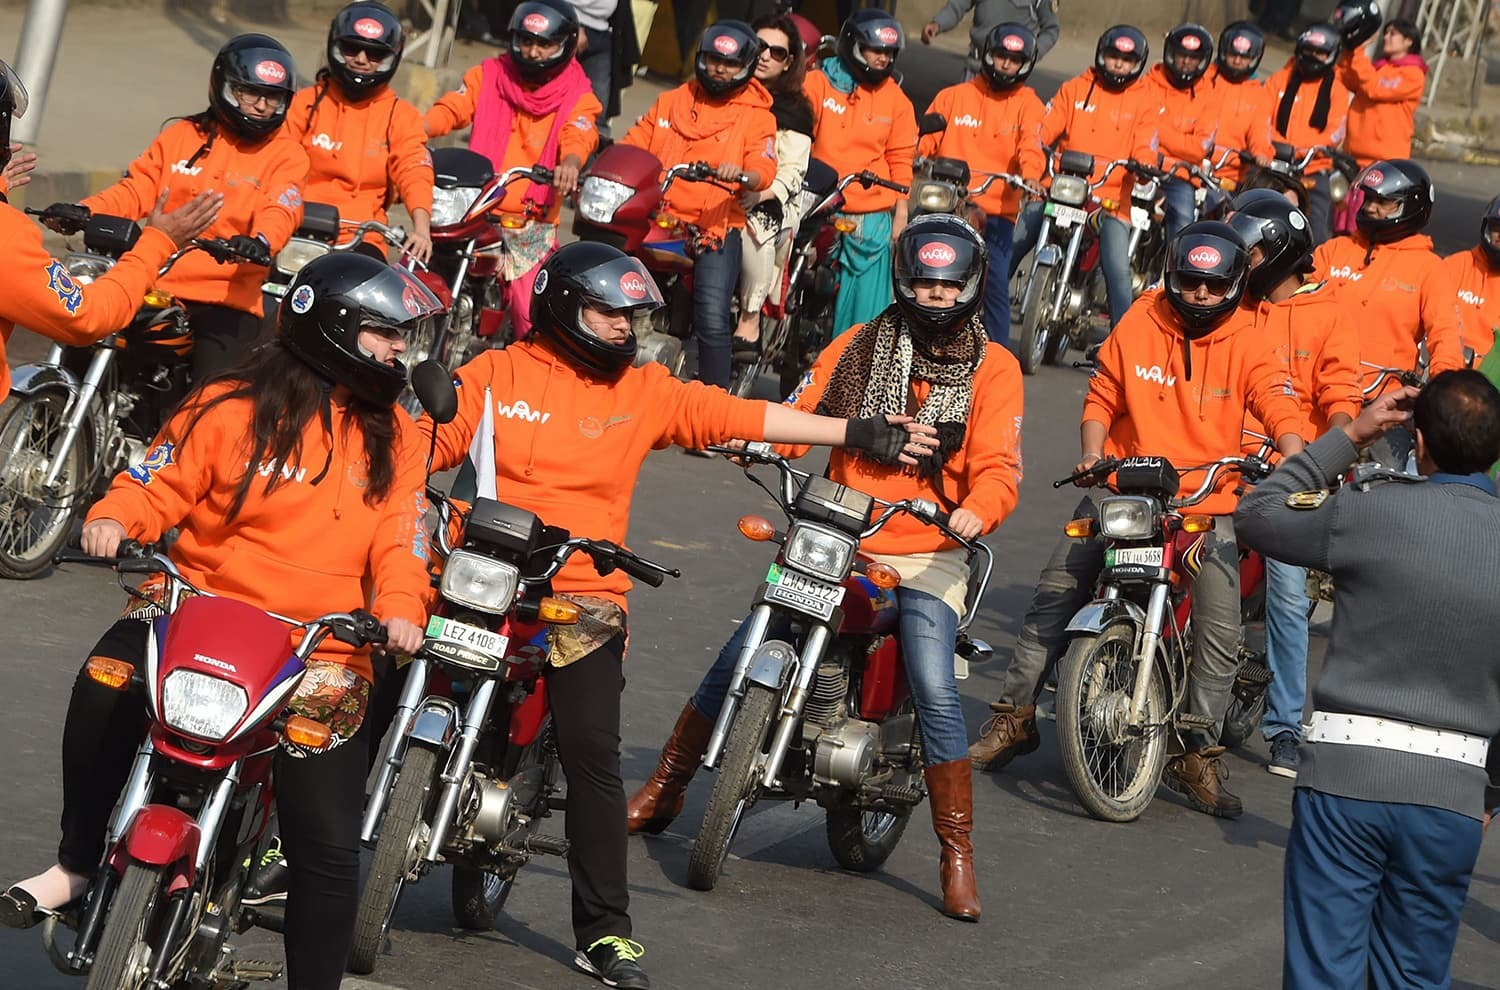 Women participants of Women on Wheels (WOW) prepare to ride their motorbikes during a rally launching the Women on Wheels campaign in Lahore on January 10, 2016.─ AFP.